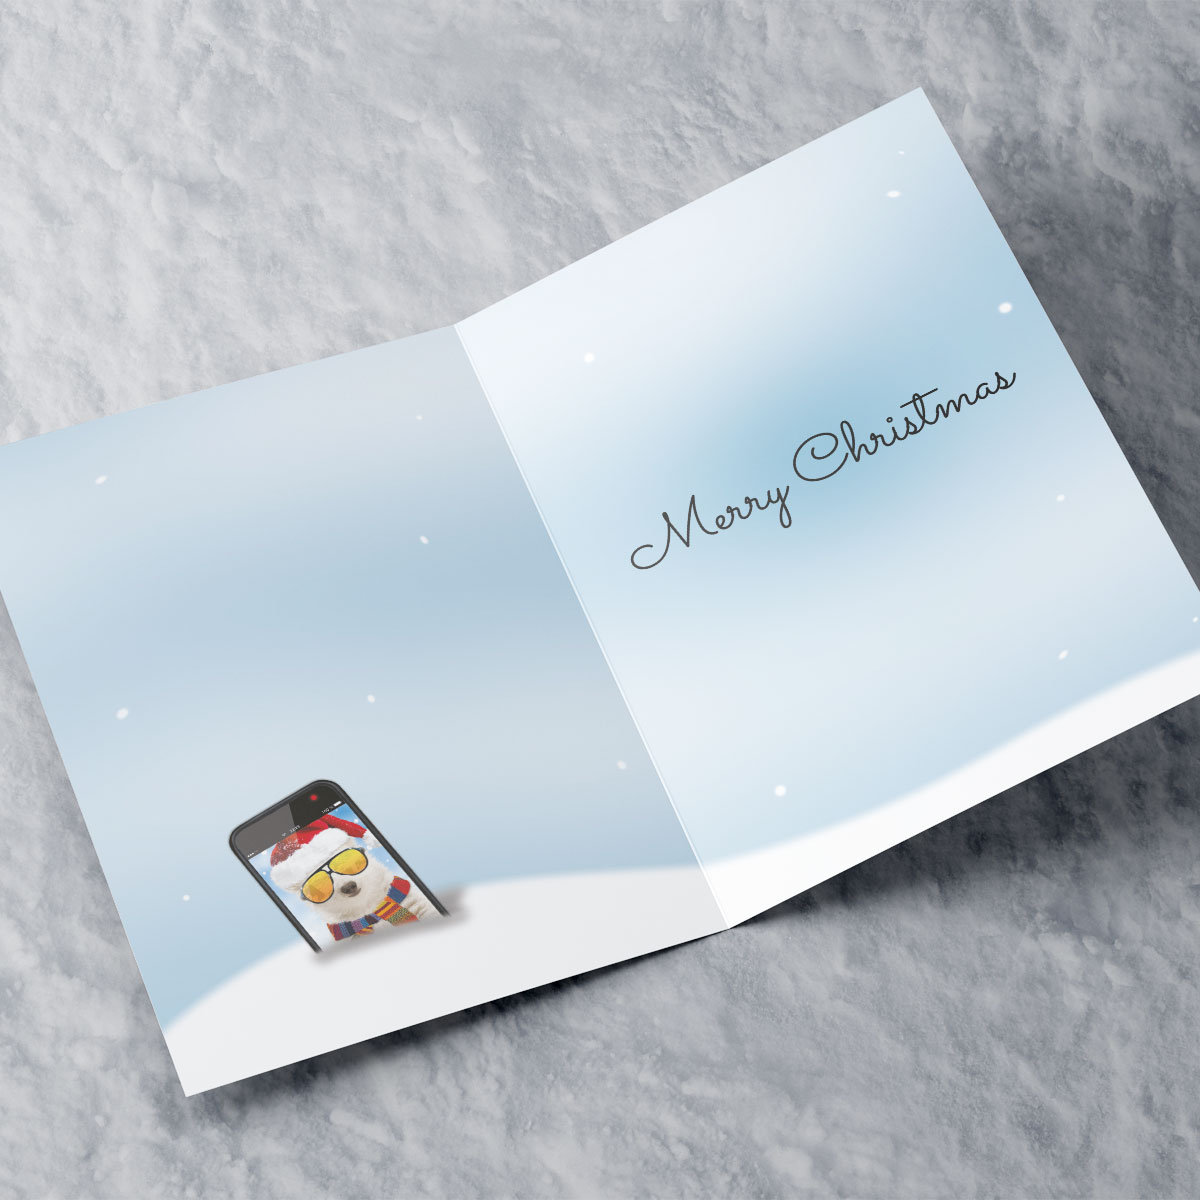 Personalised Christmas Card - Have Your Selfie A Merry Christmas - Godson